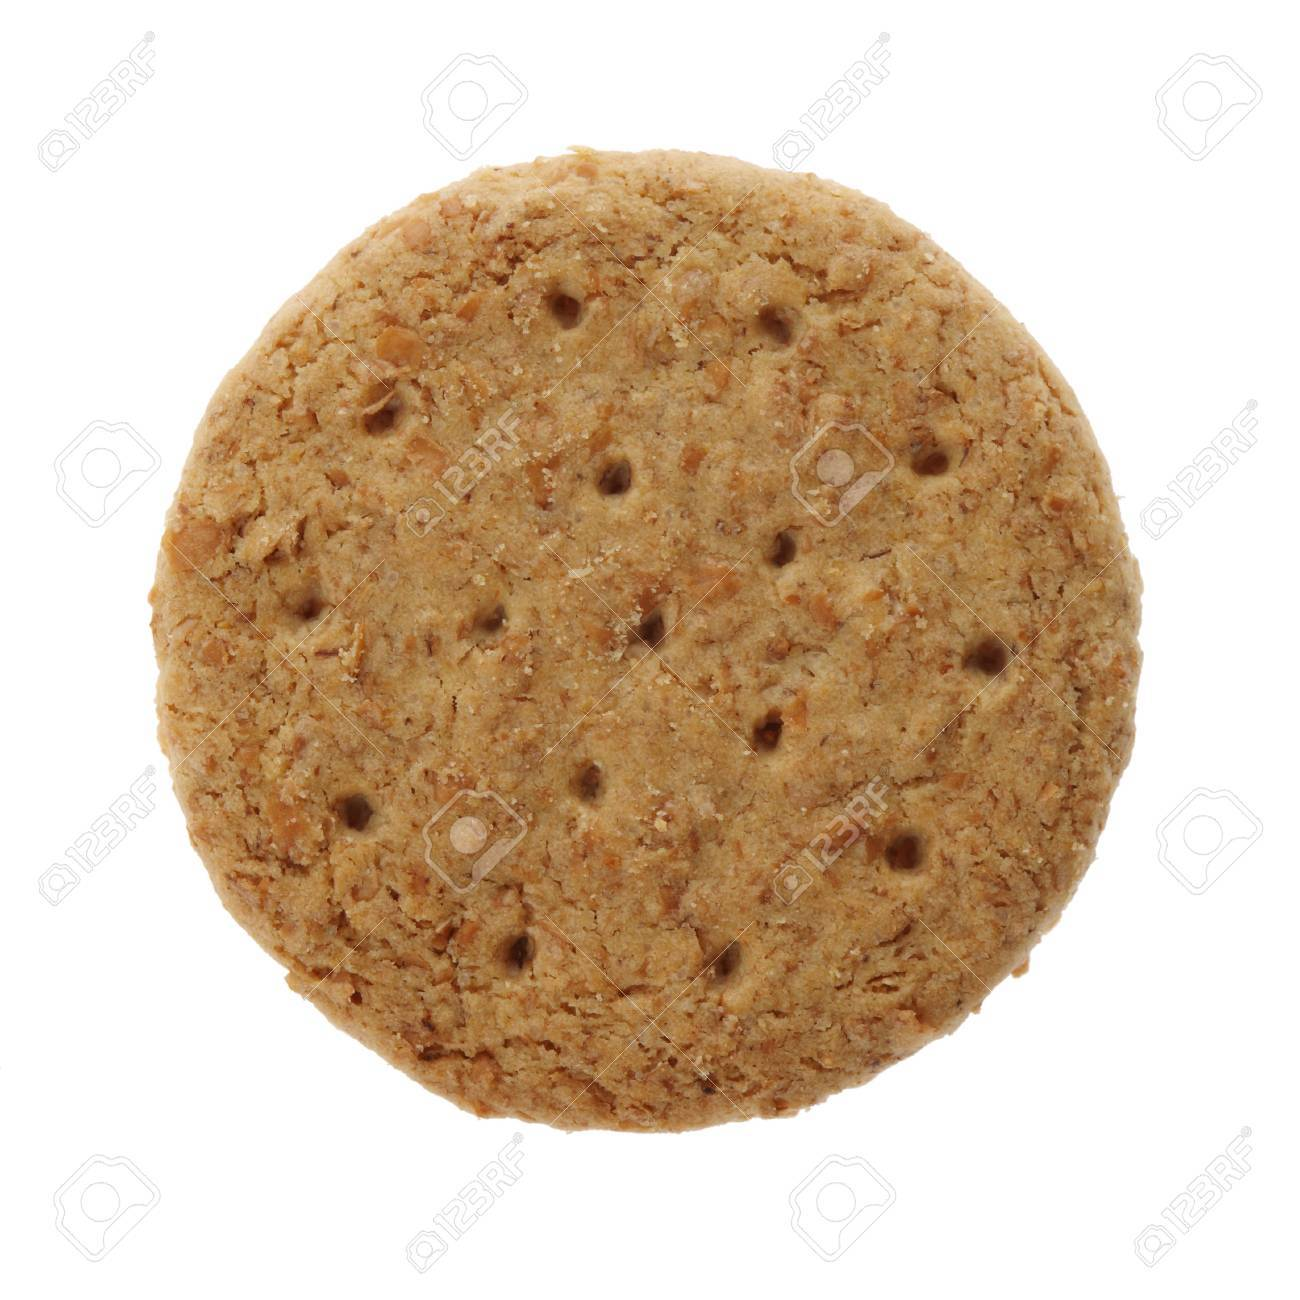 A Digestive biscuit isolated on white Stock Photo - 3420177